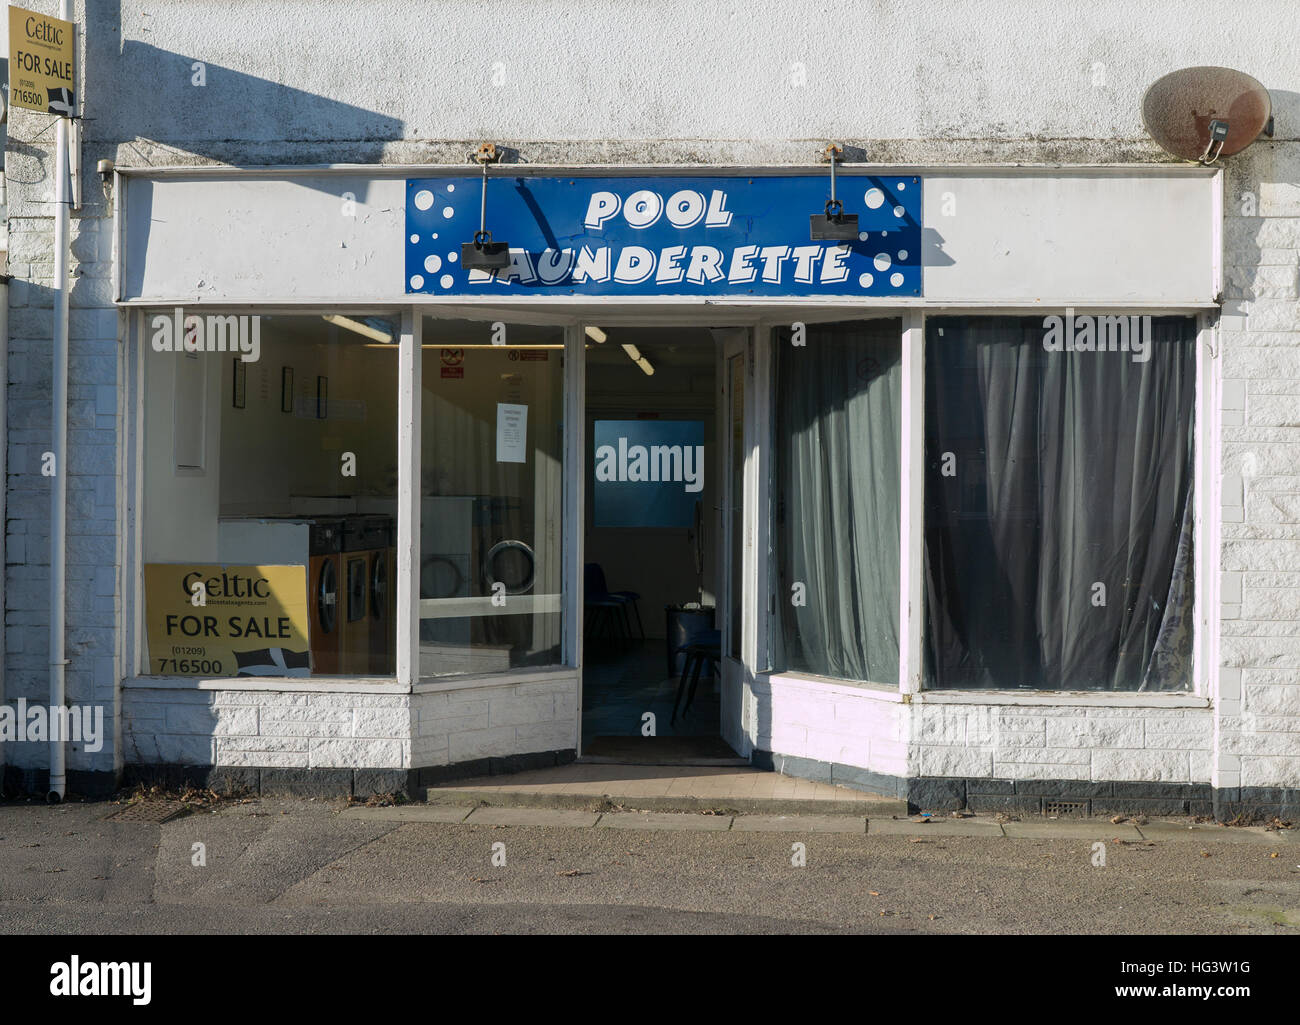 Pool Laundrette building for sale, Redruth Cornwall England UK.Stock Photo